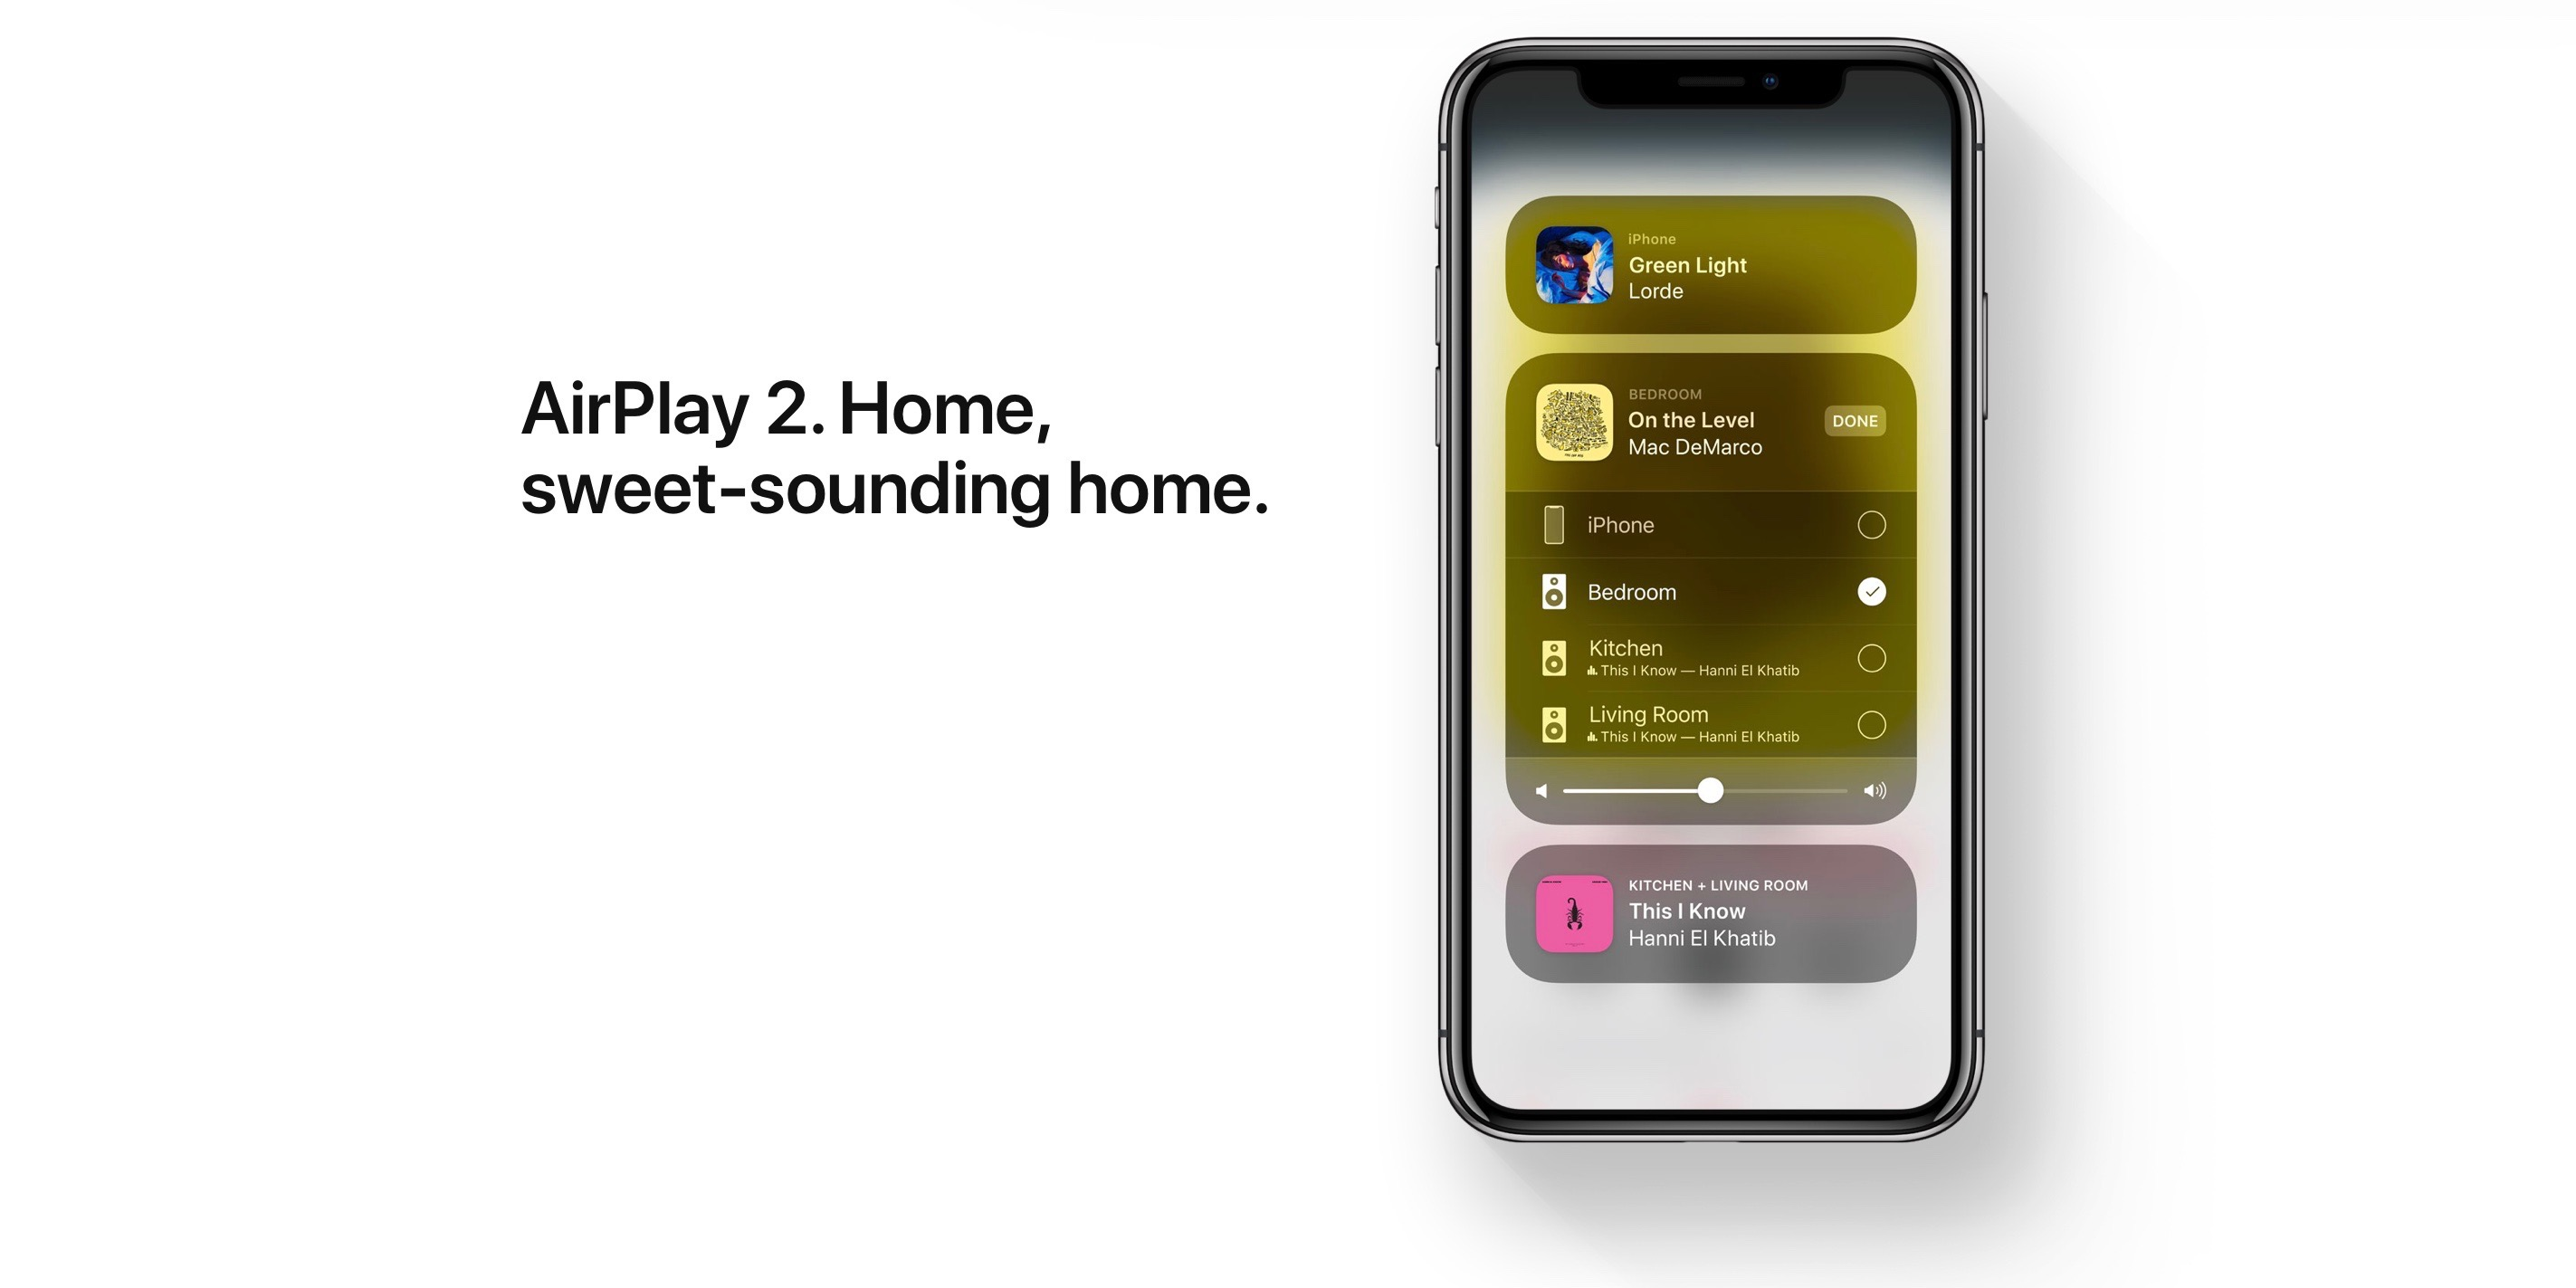 Hands-on: Controlling AirPlay 2 playback on Apple TV from